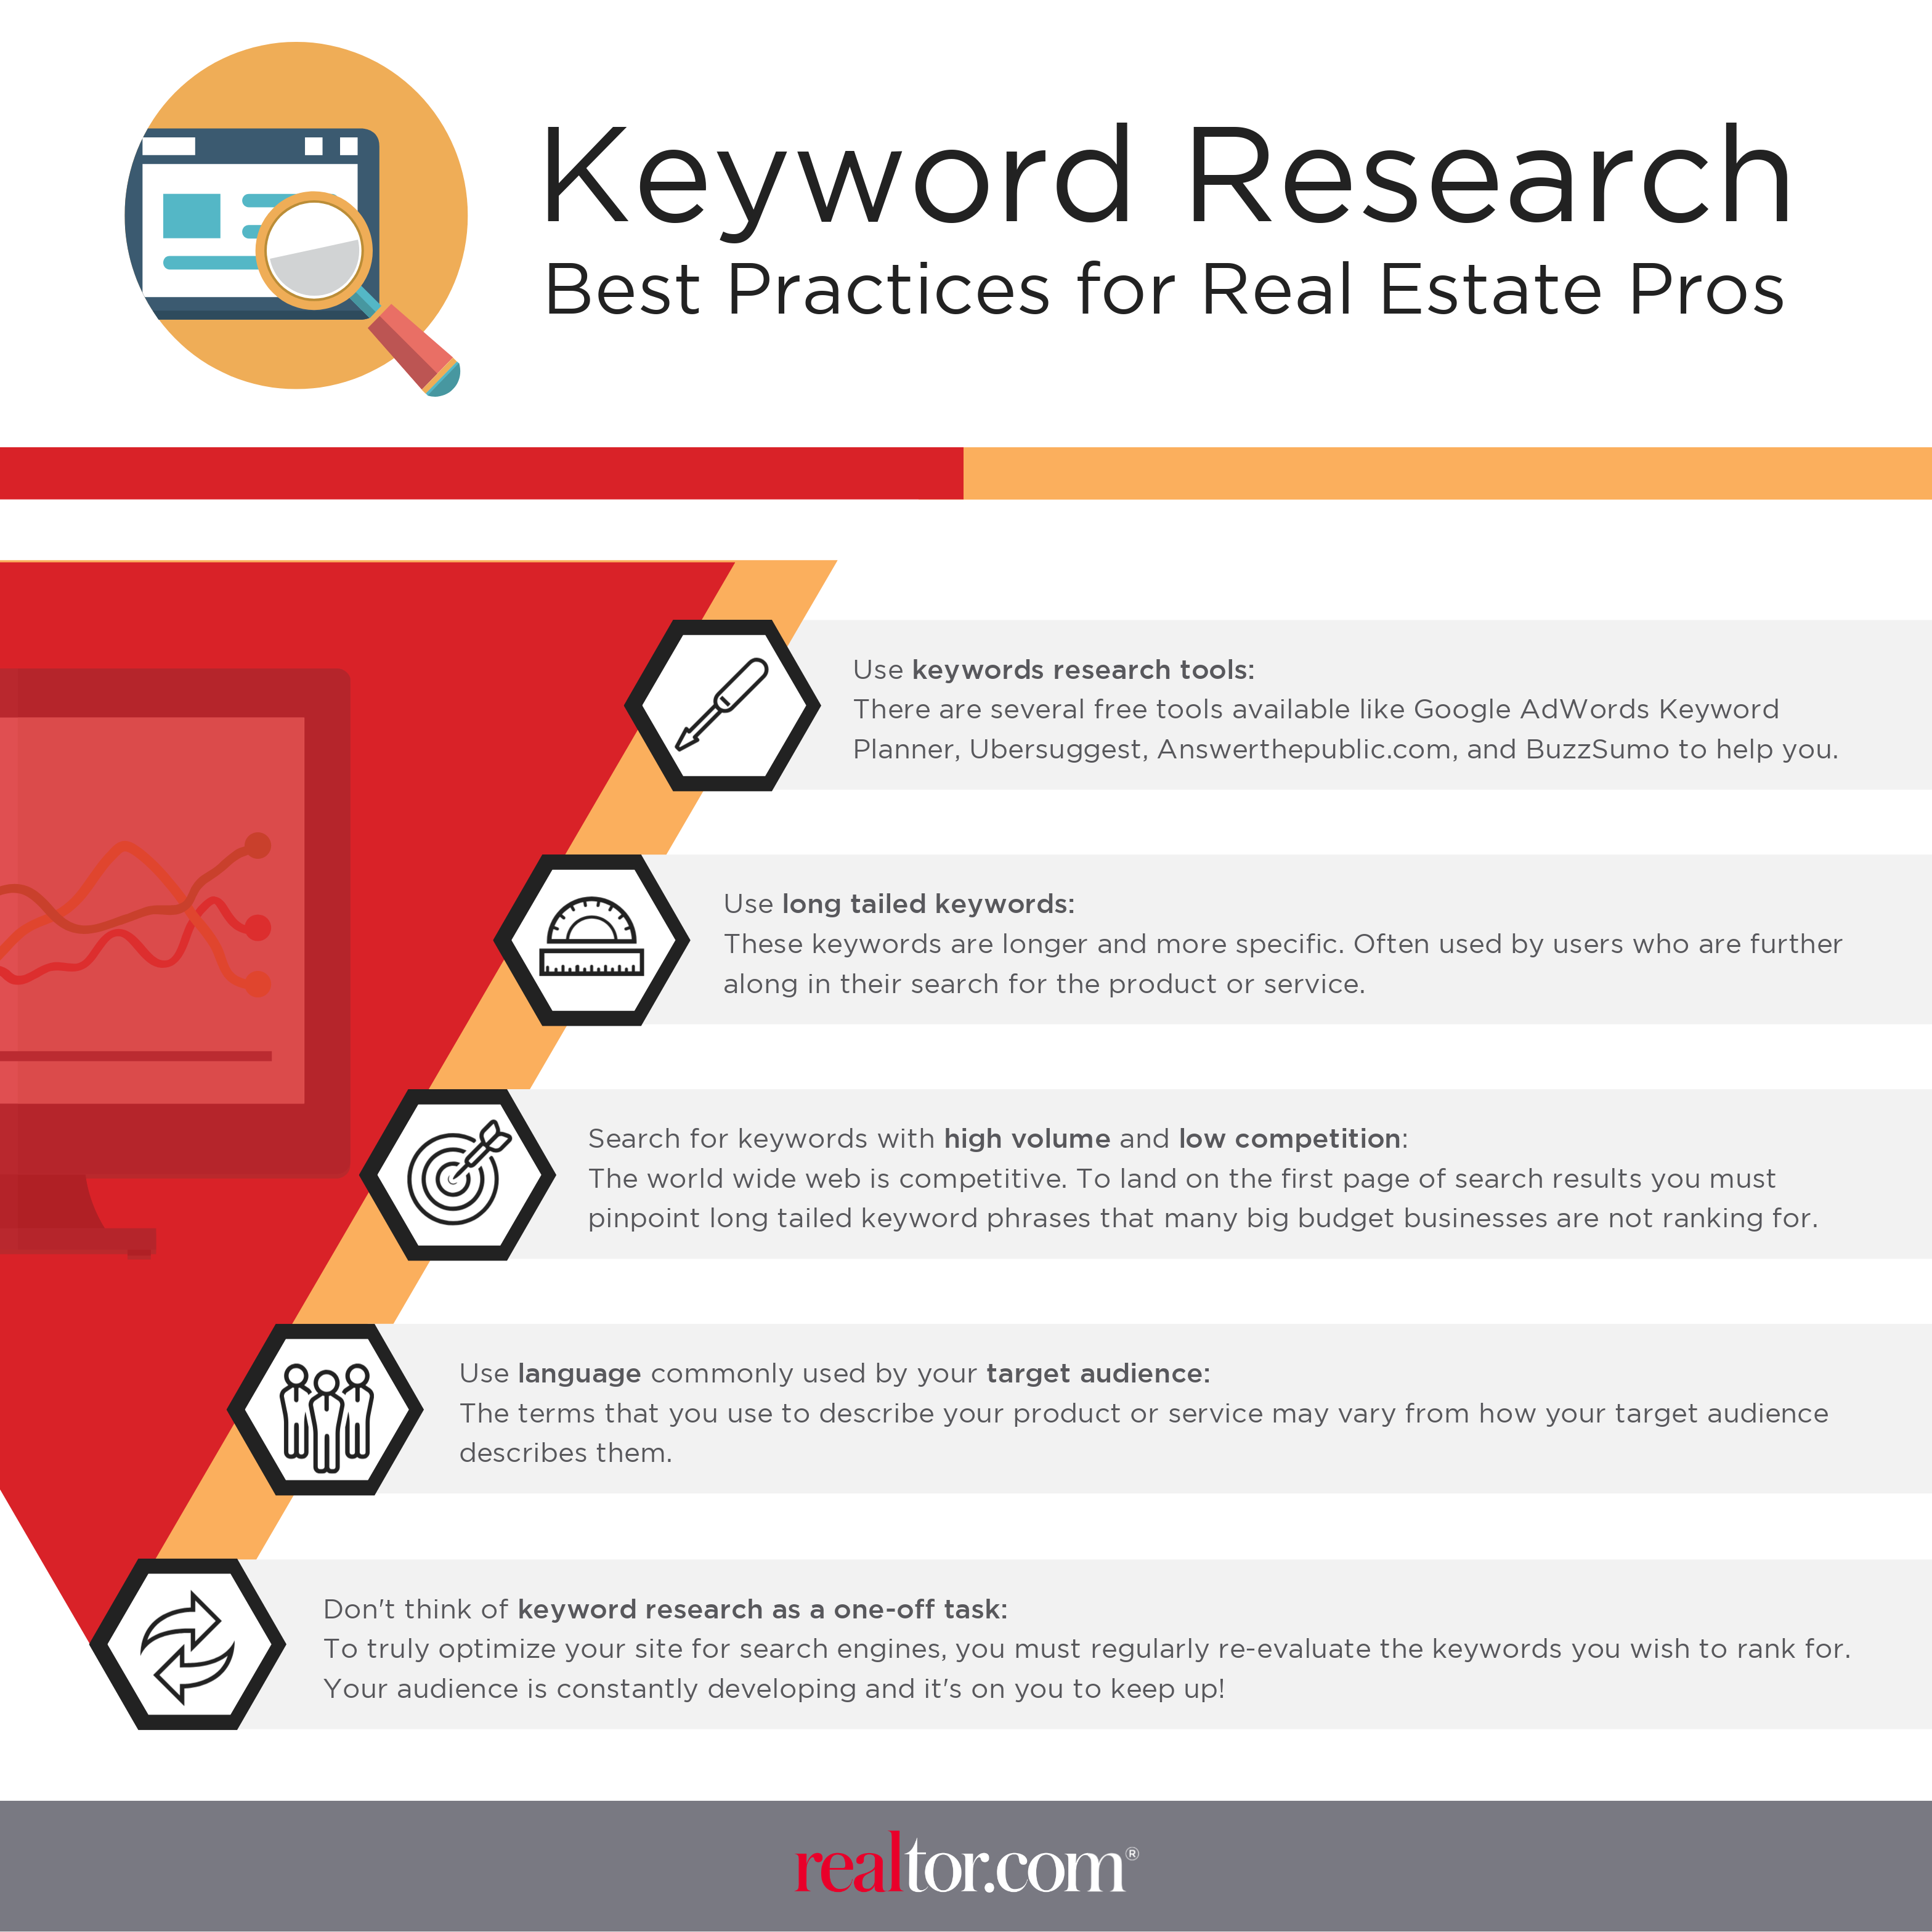 SEO Keyword Research Best Practices